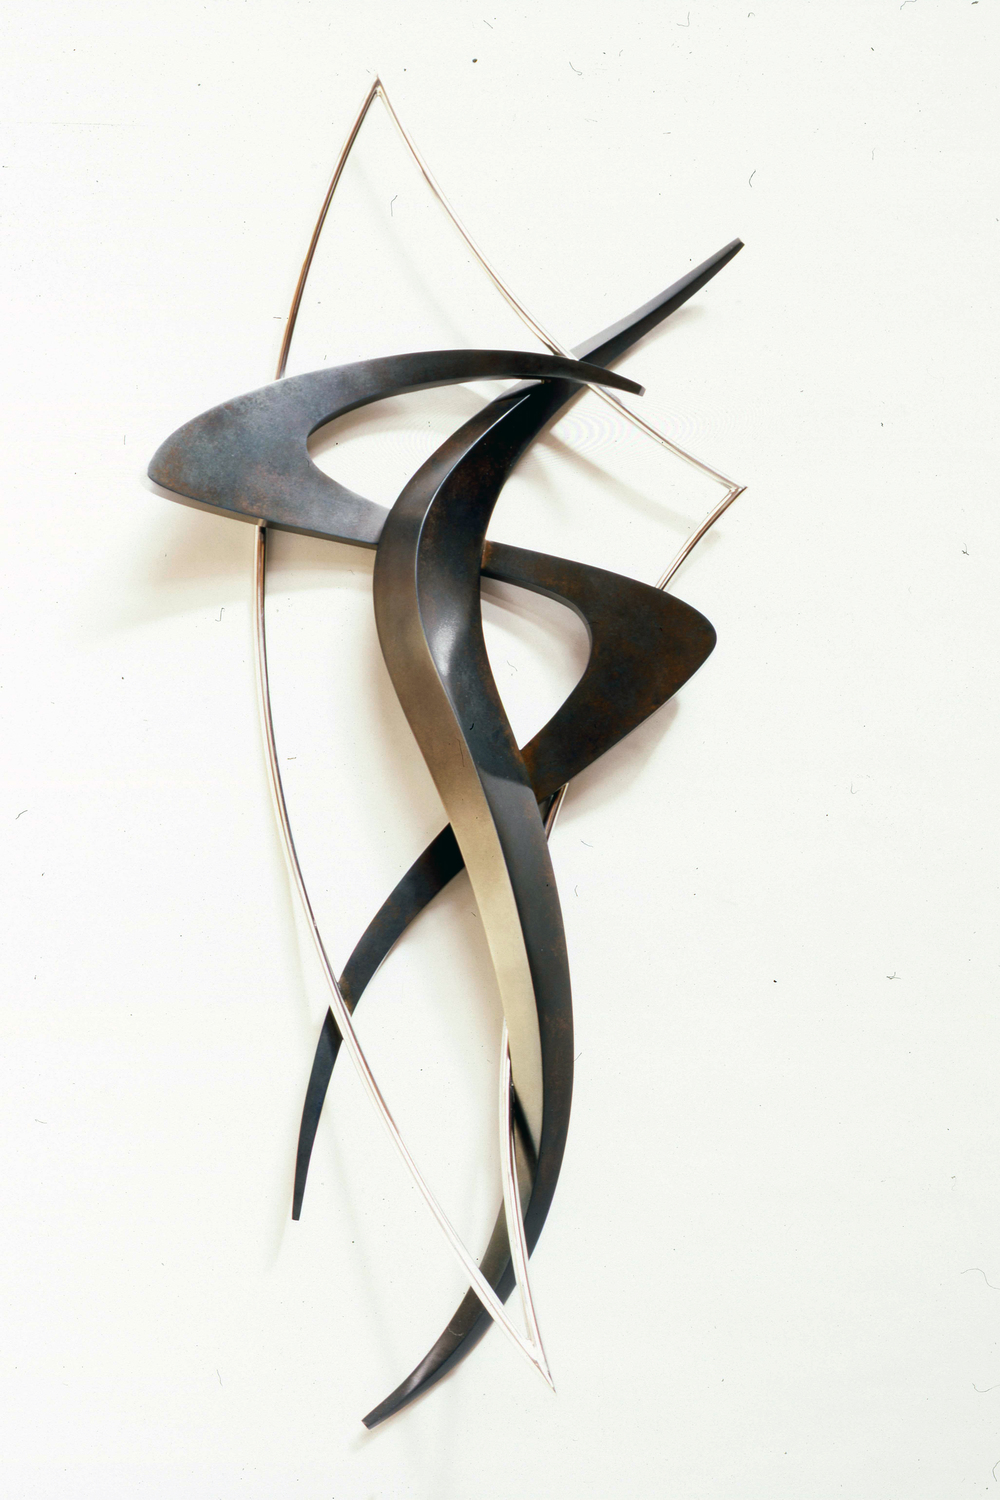 Entropy Series #45, bronze & stainless steel